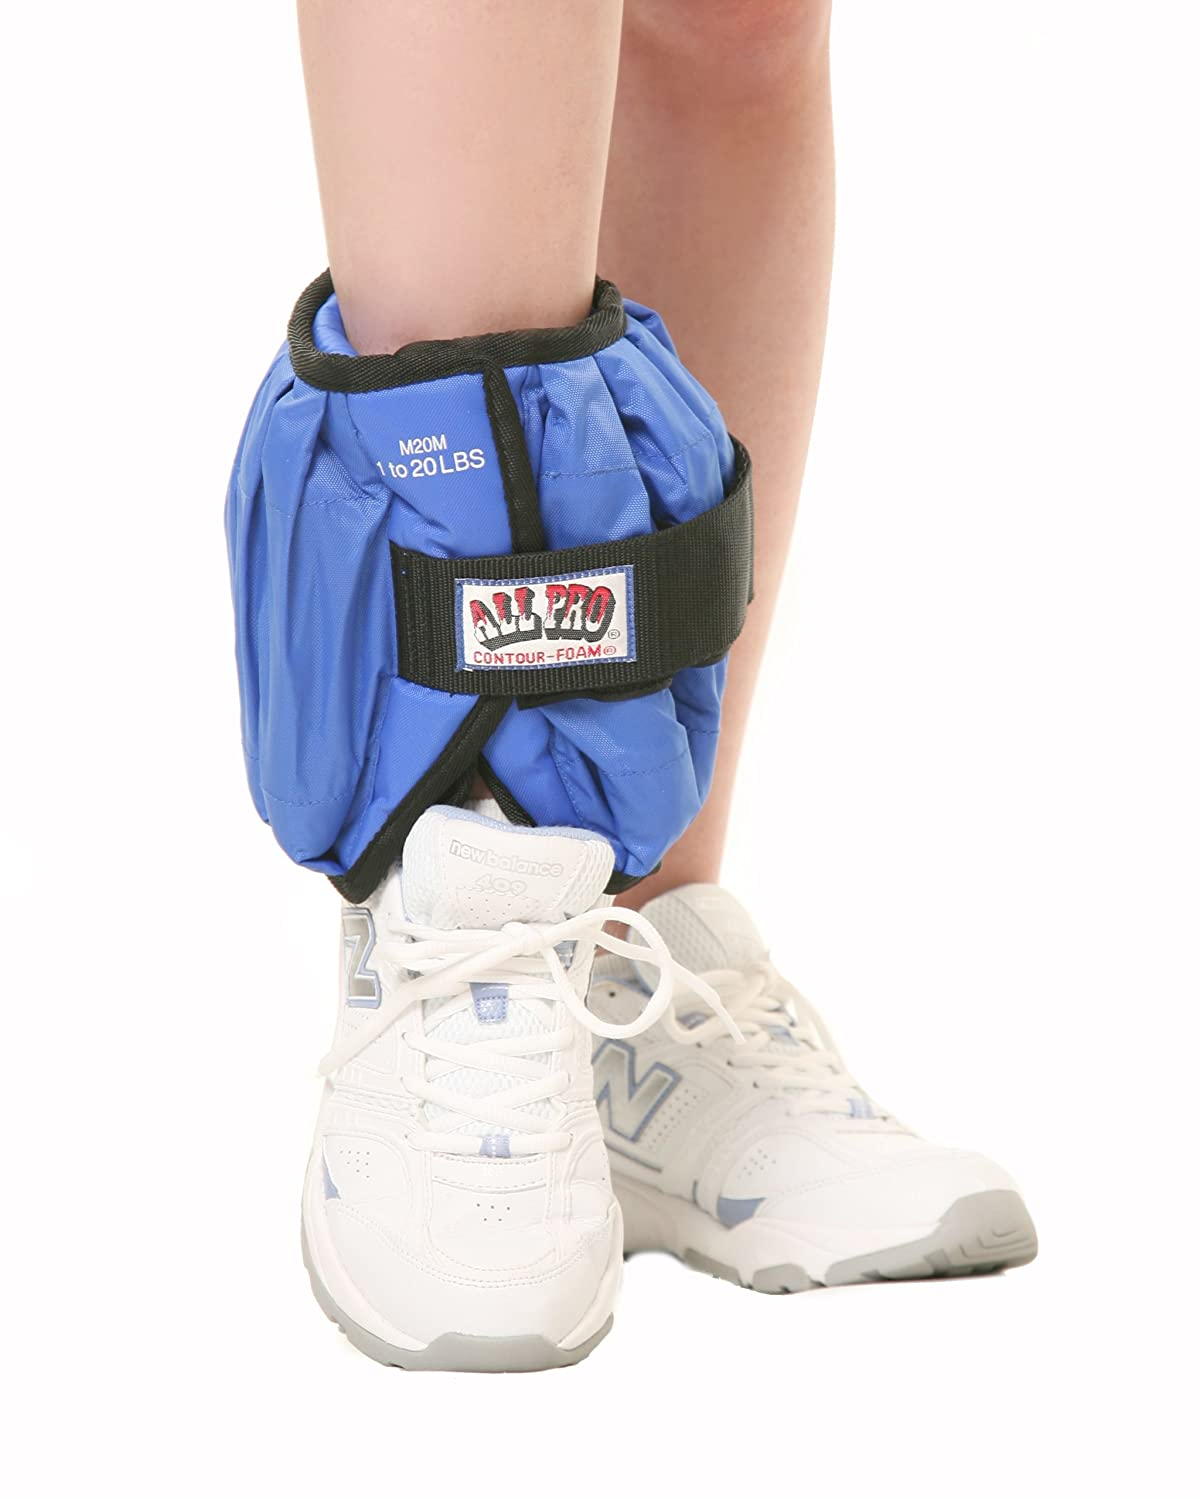 Ankle Weights Black Adjustable Ankle Weight